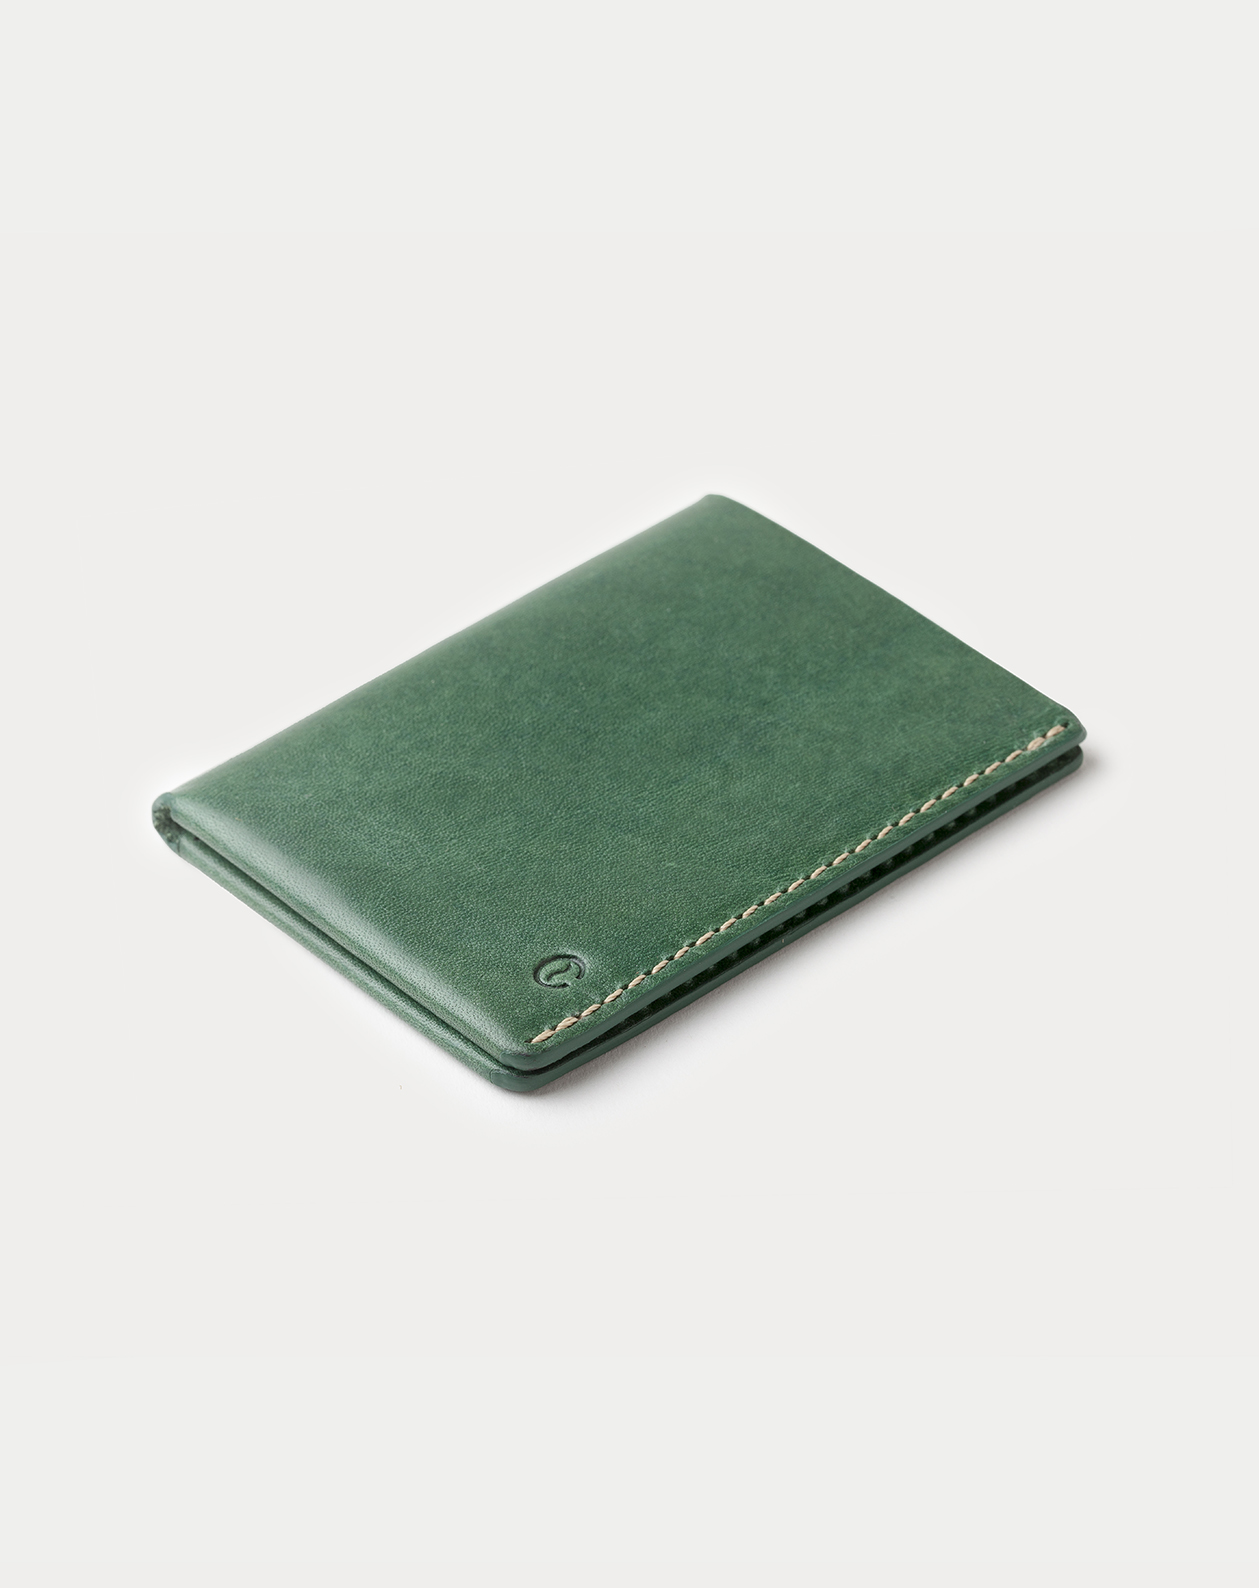 slim wallet green for cards and bills